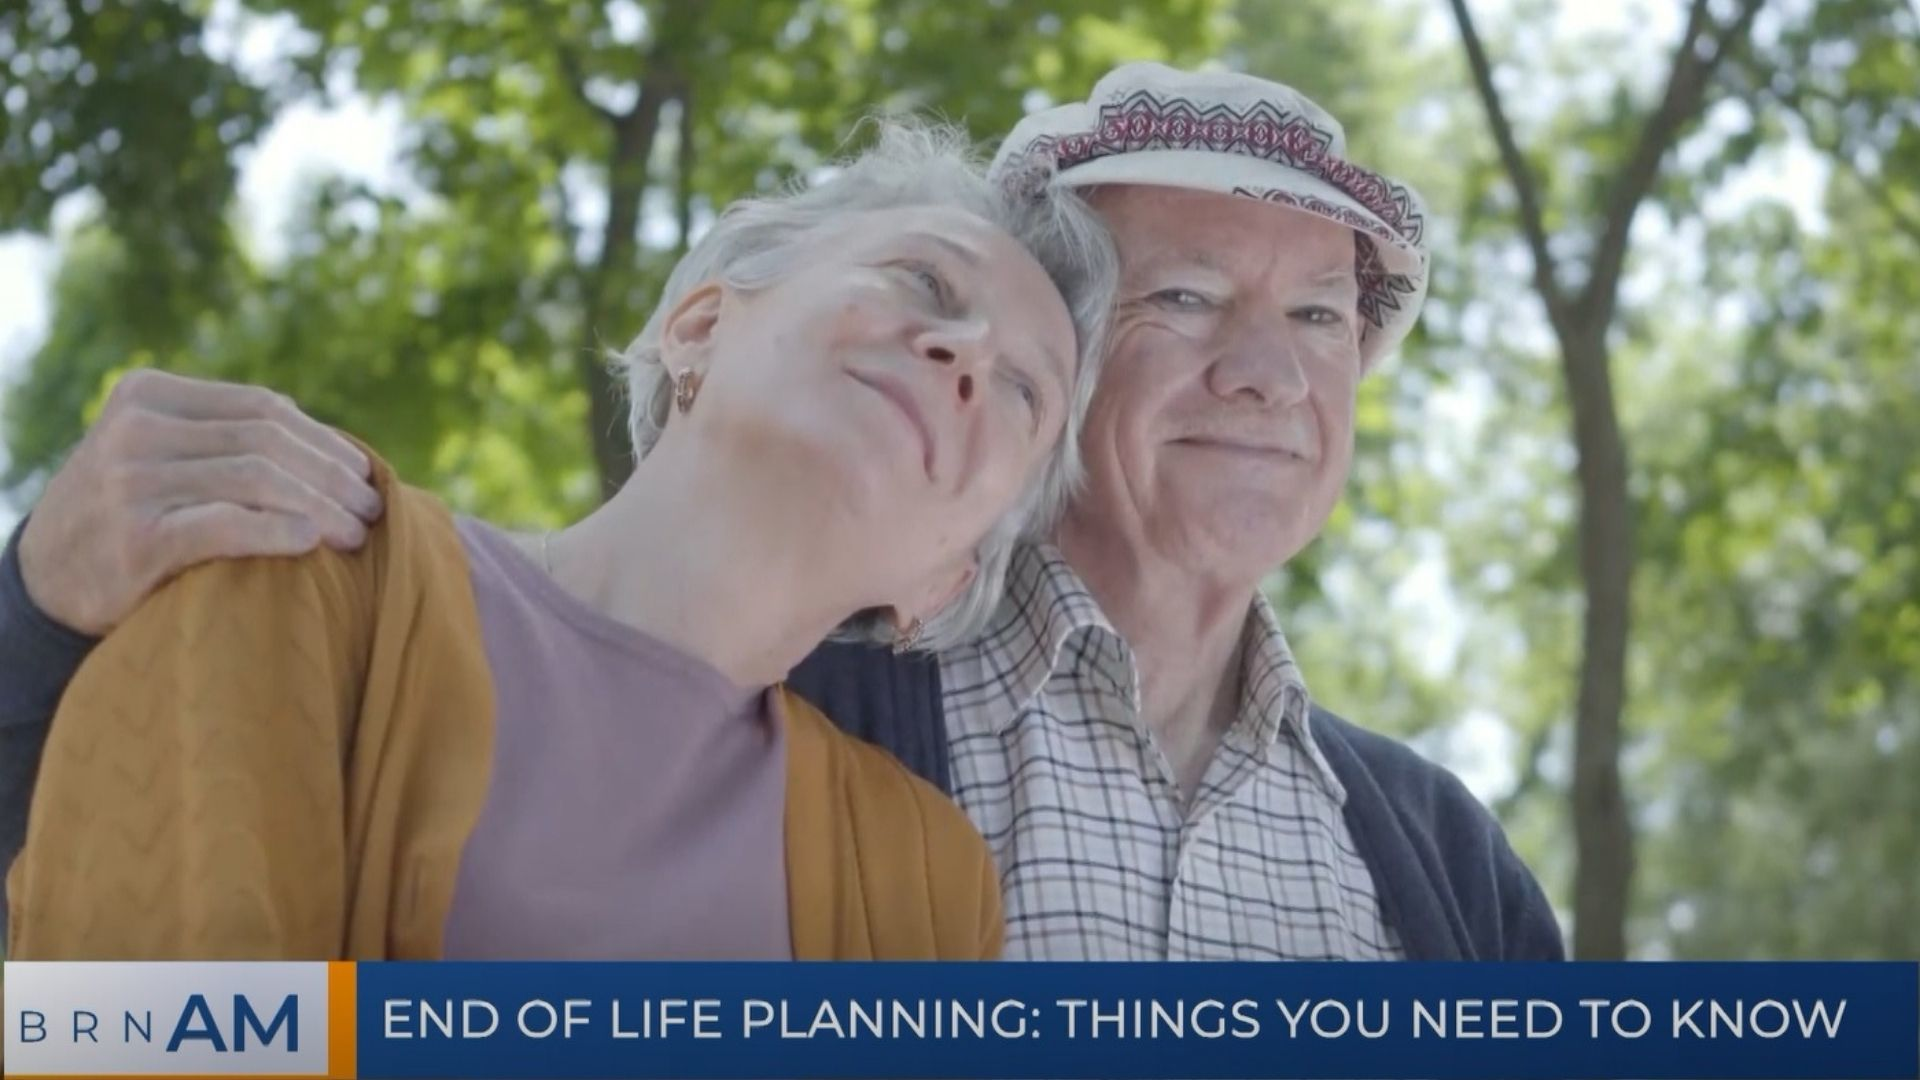 BRN AM   End of Life Planning: Things You Need to Know